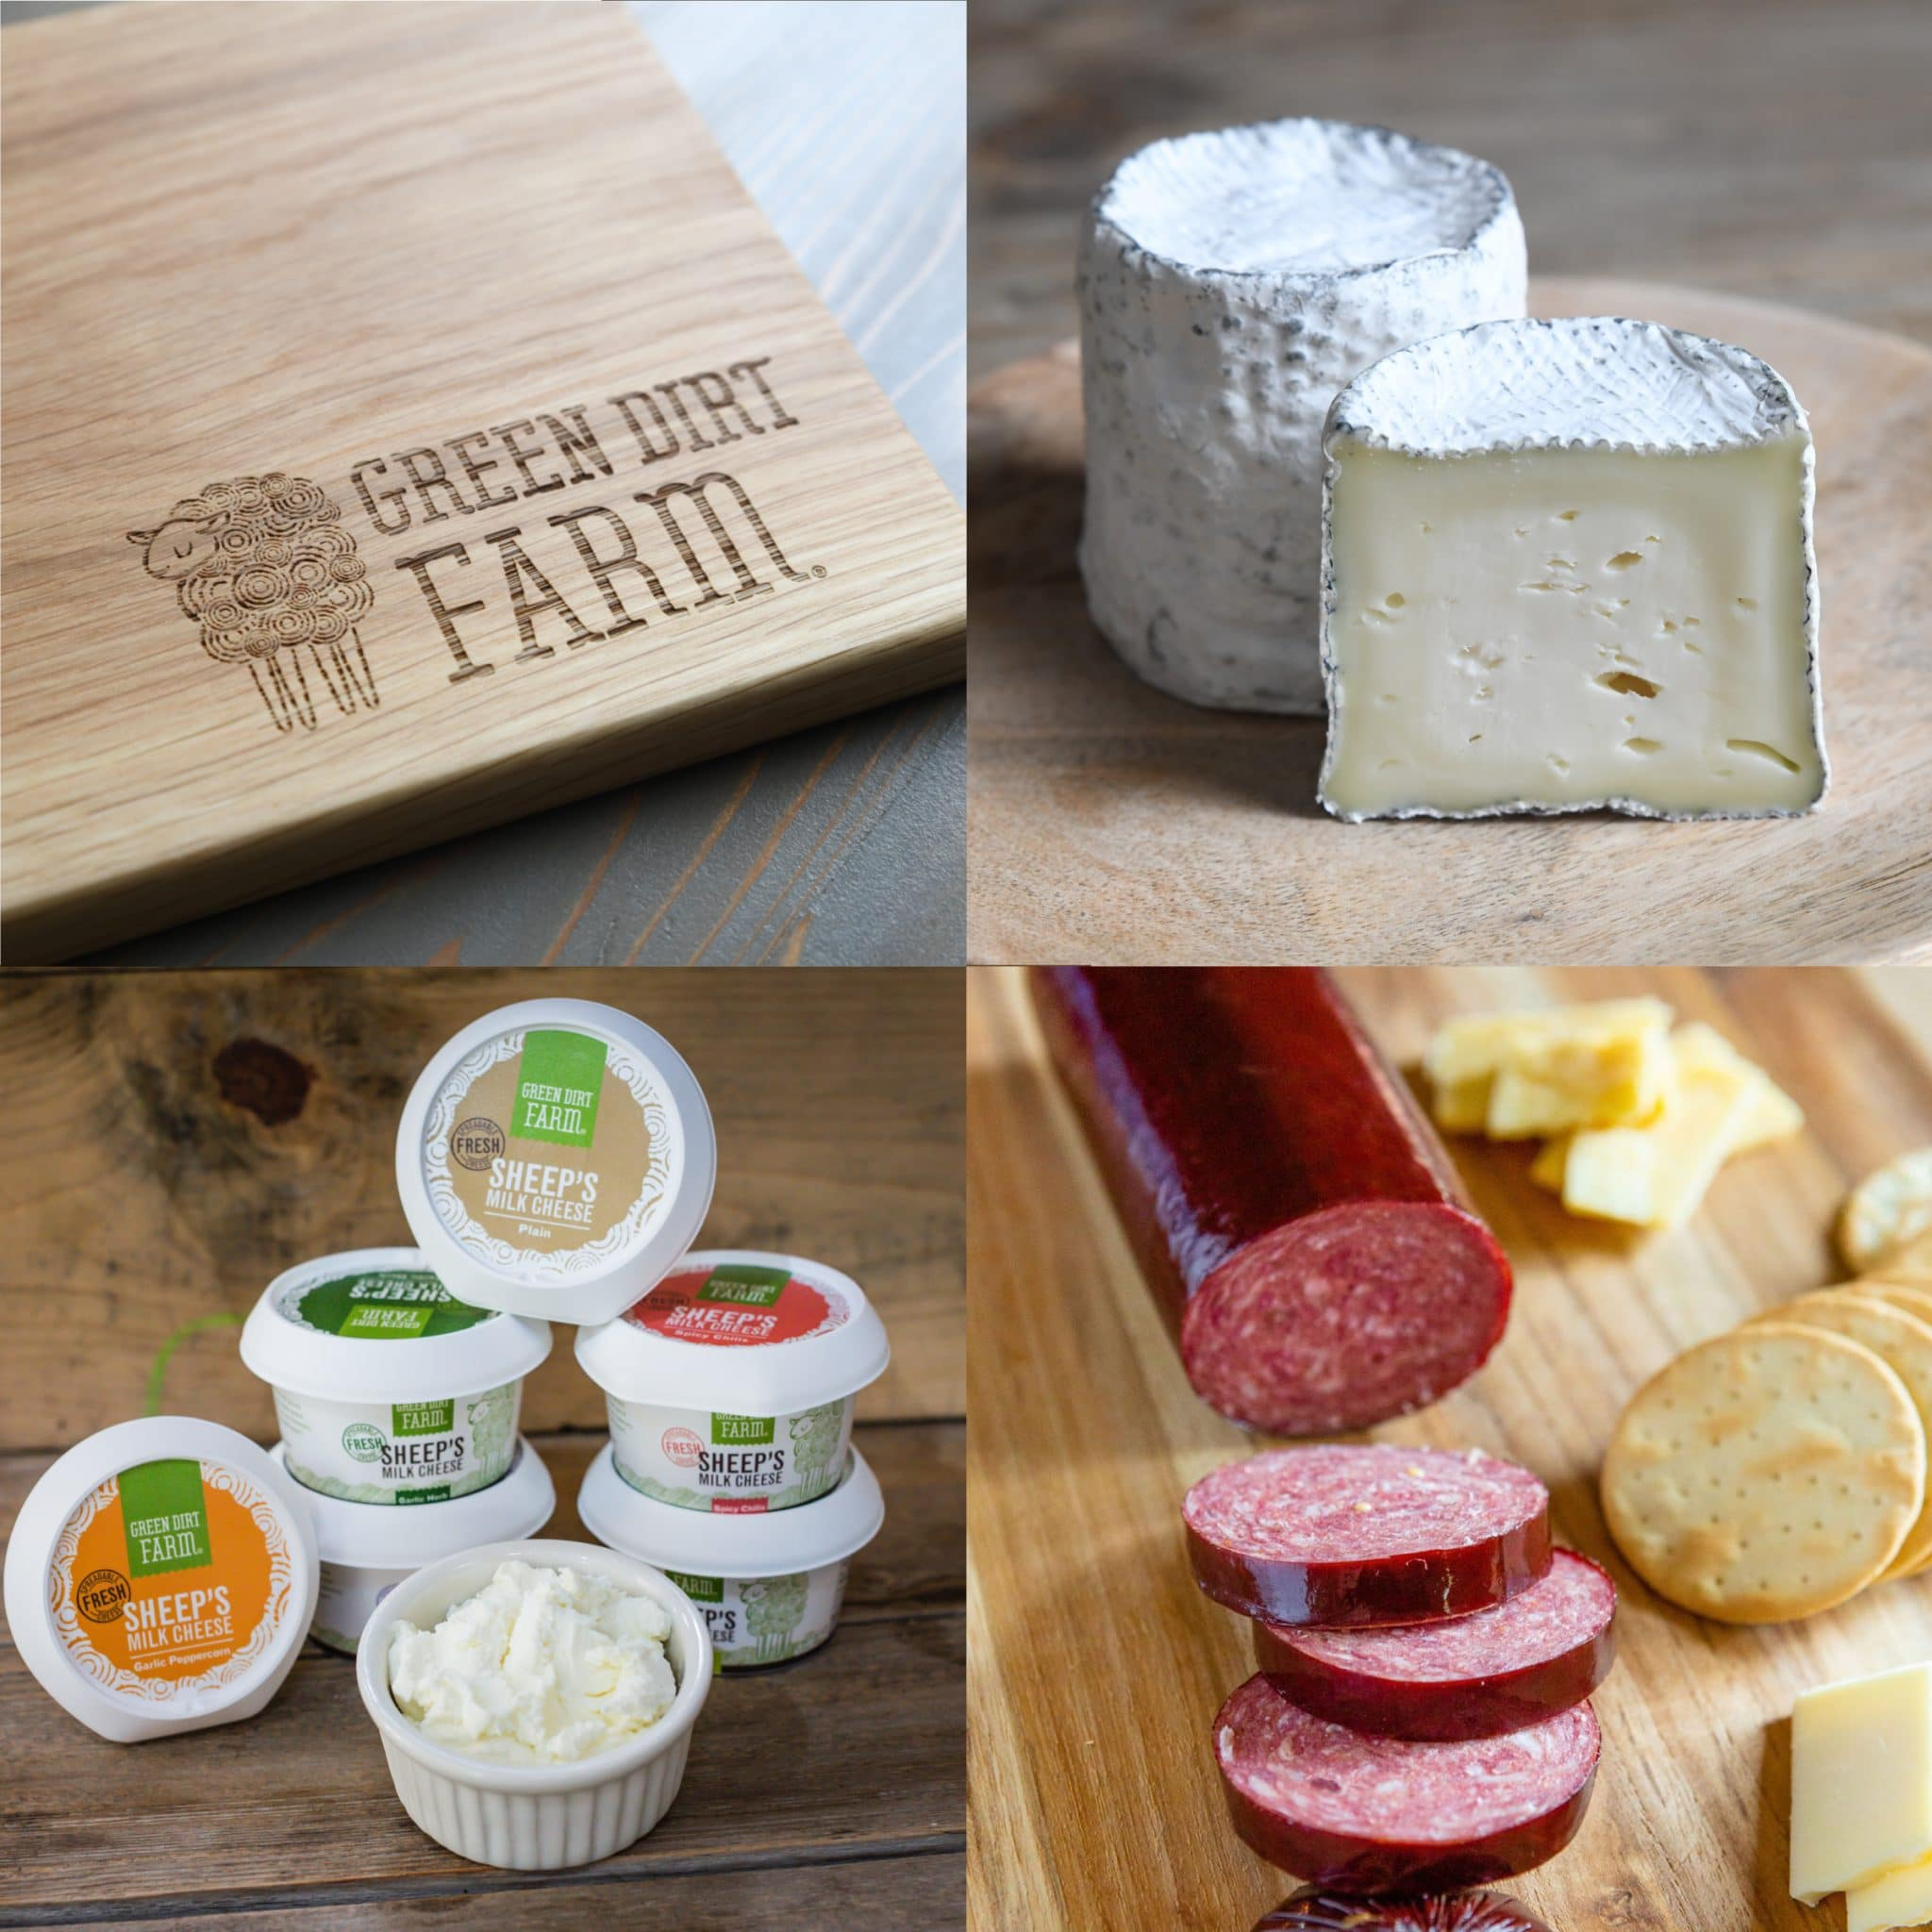 Ship your customizable care package for free, complete with fresh sheep cheese and charcuterie.